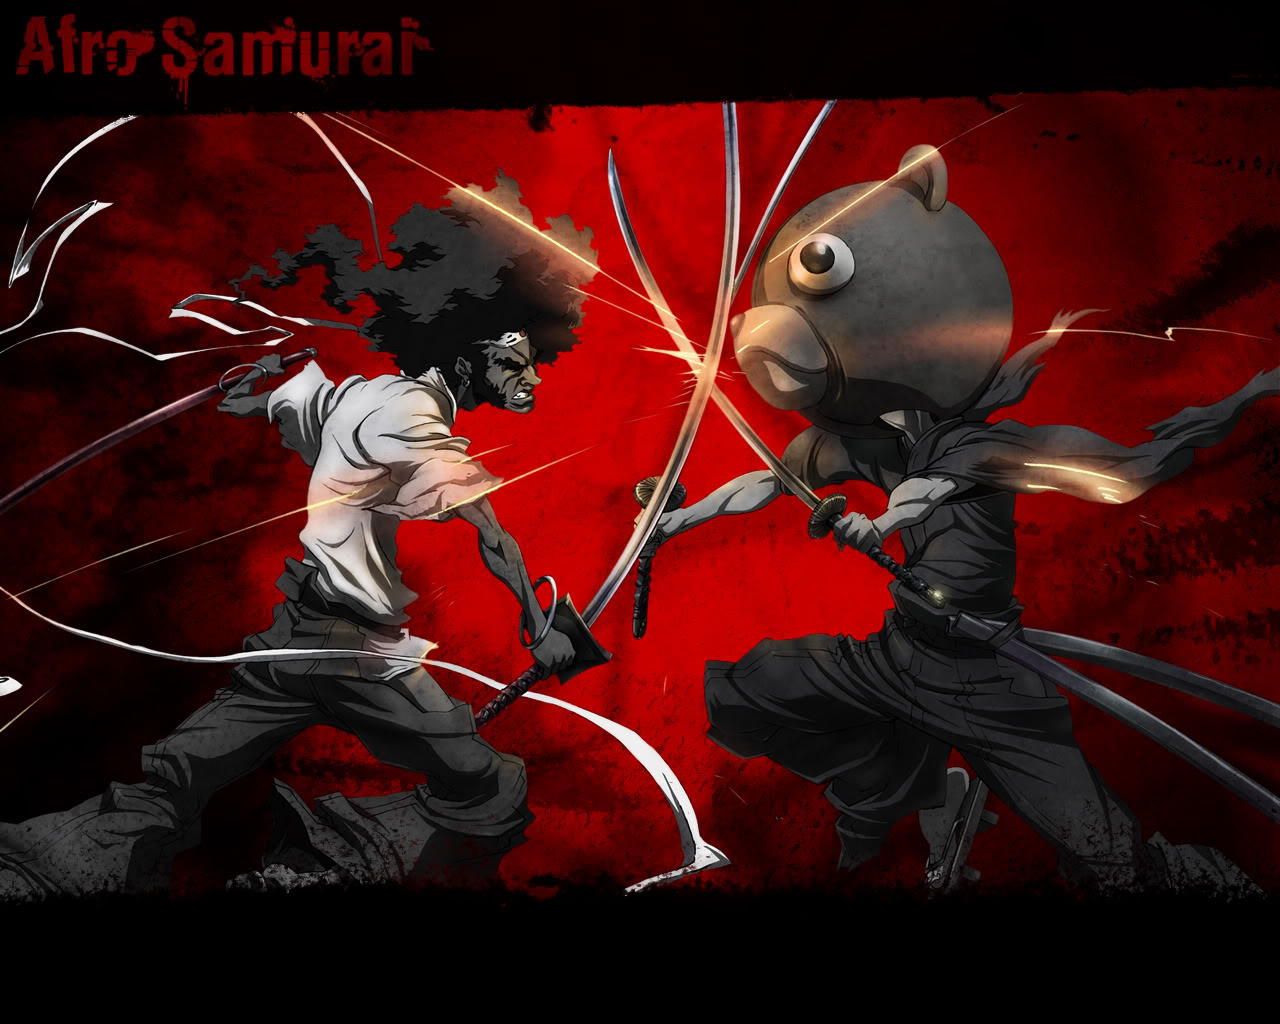 samurai x, particularly love the songs | great manga and anime ...